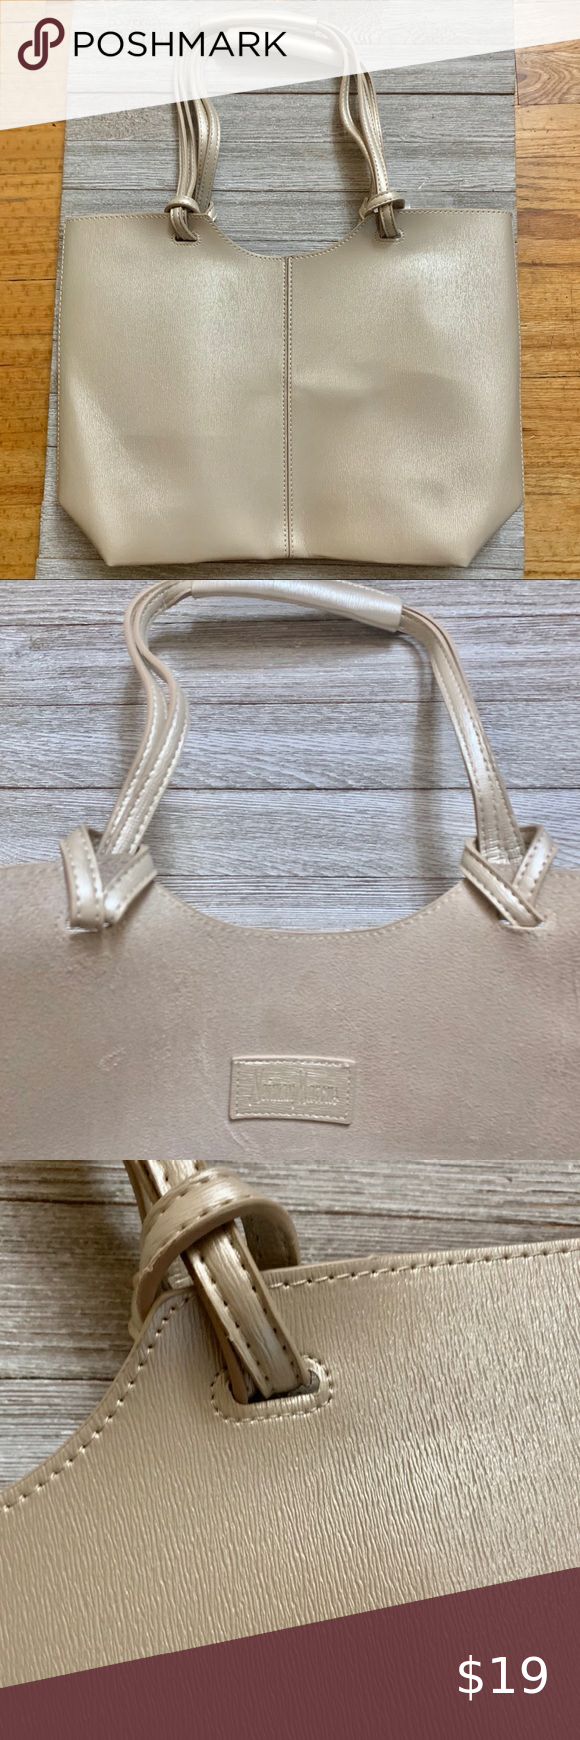 Neiman Marcus Gold Faux Leather Tote Bag New Leather Tote Bag Leather Tote Faux Leather